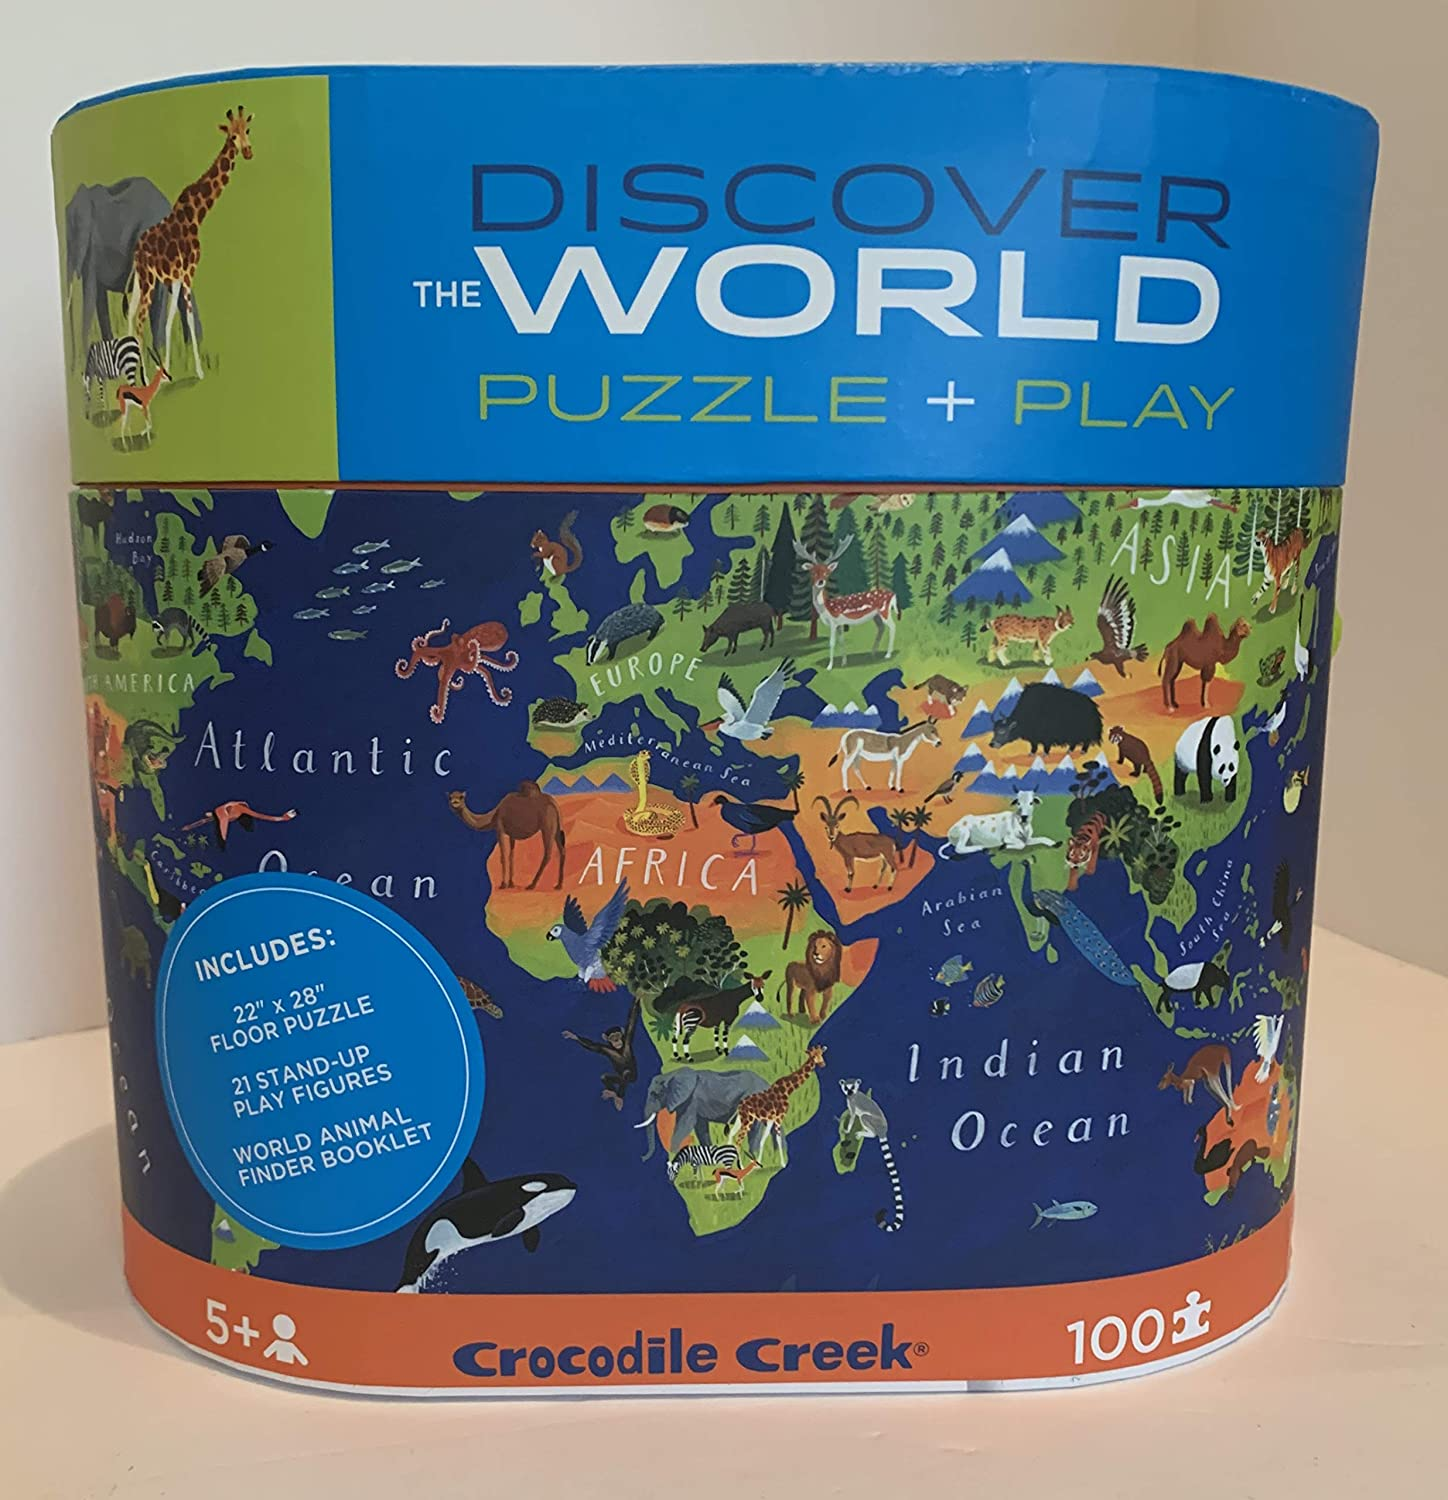 Crocodile Creek - Discover The World Puzzle + Play